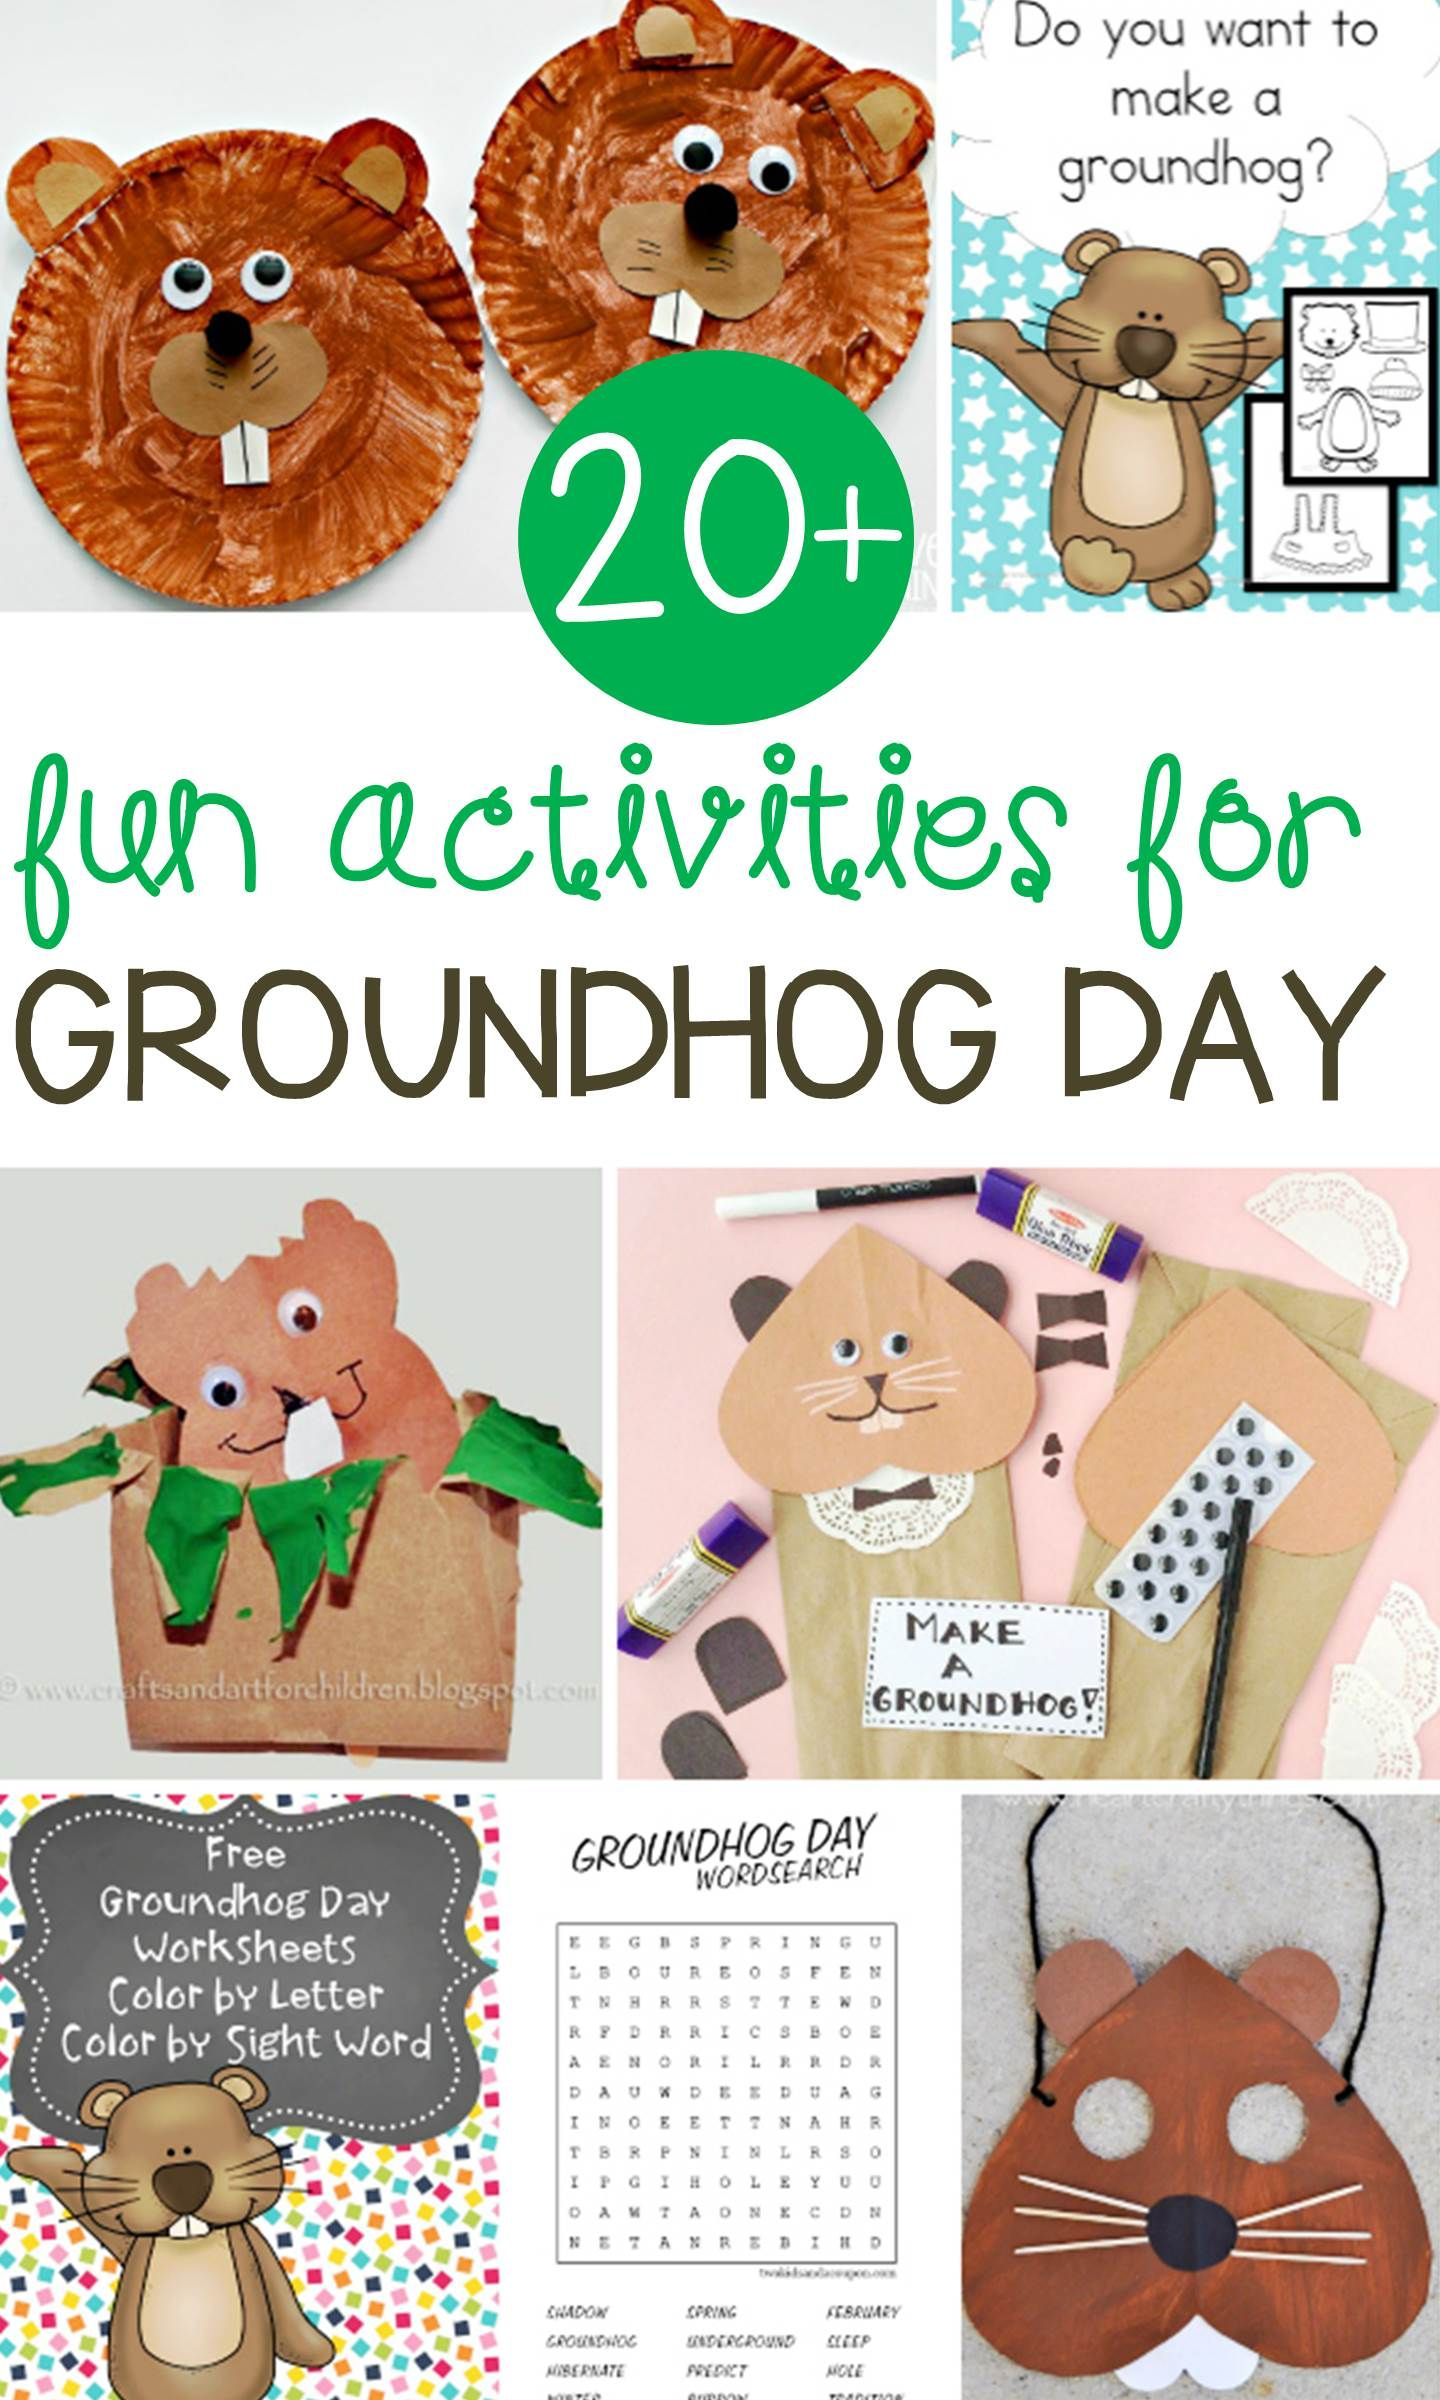 Fun Groundhog Day Activities for Kids | Día de la marmota, Para ...